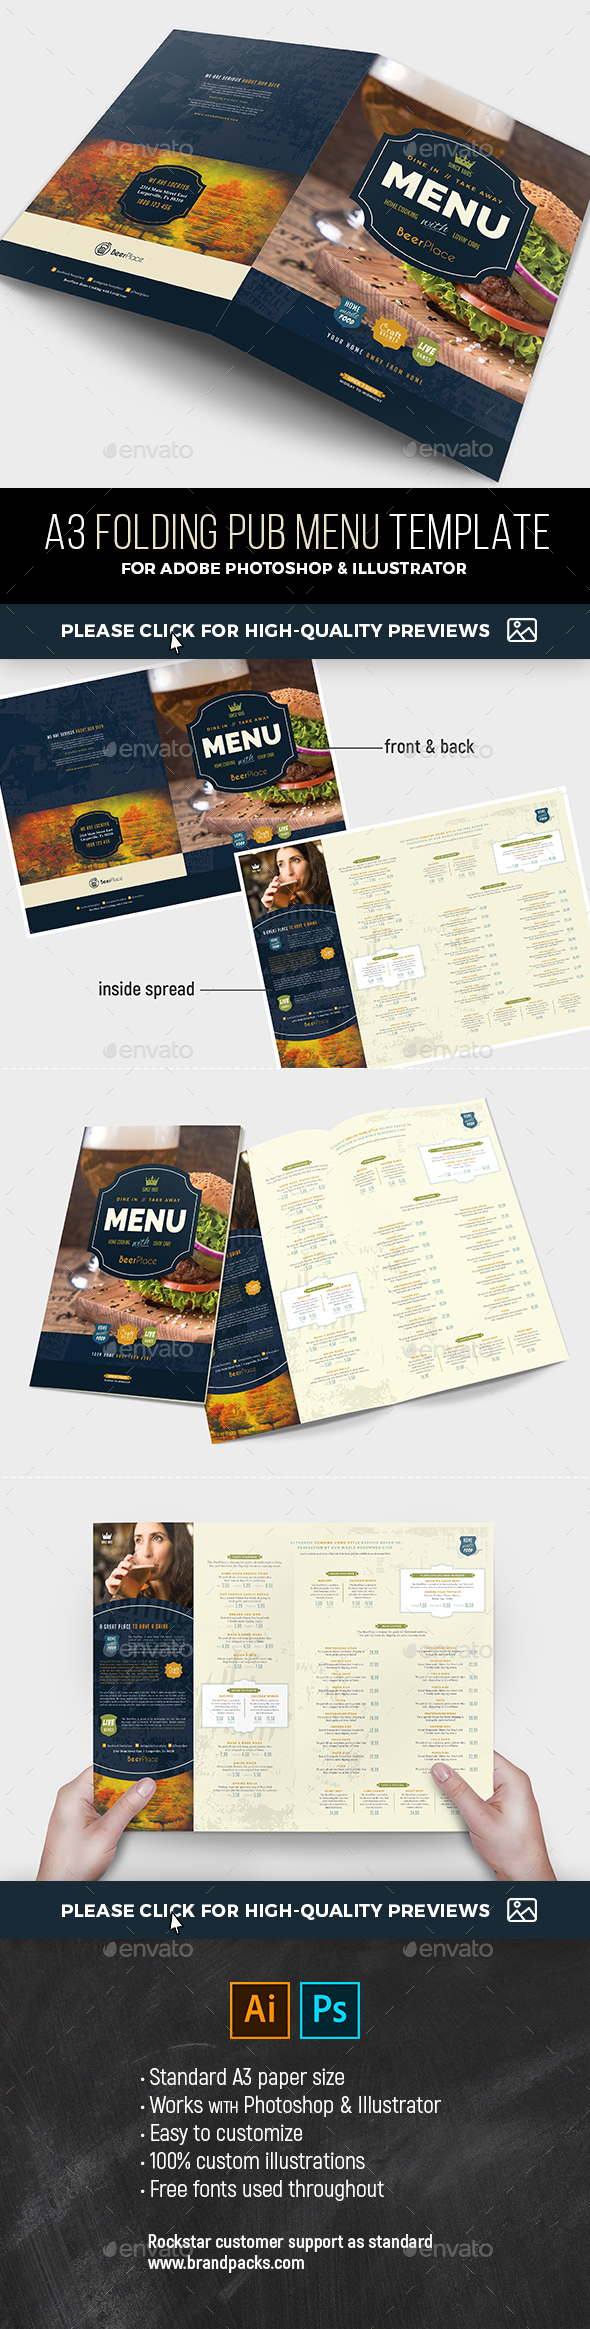 A Pub Menu Template By BrandPacks GraphicRiver - Foldable menu template